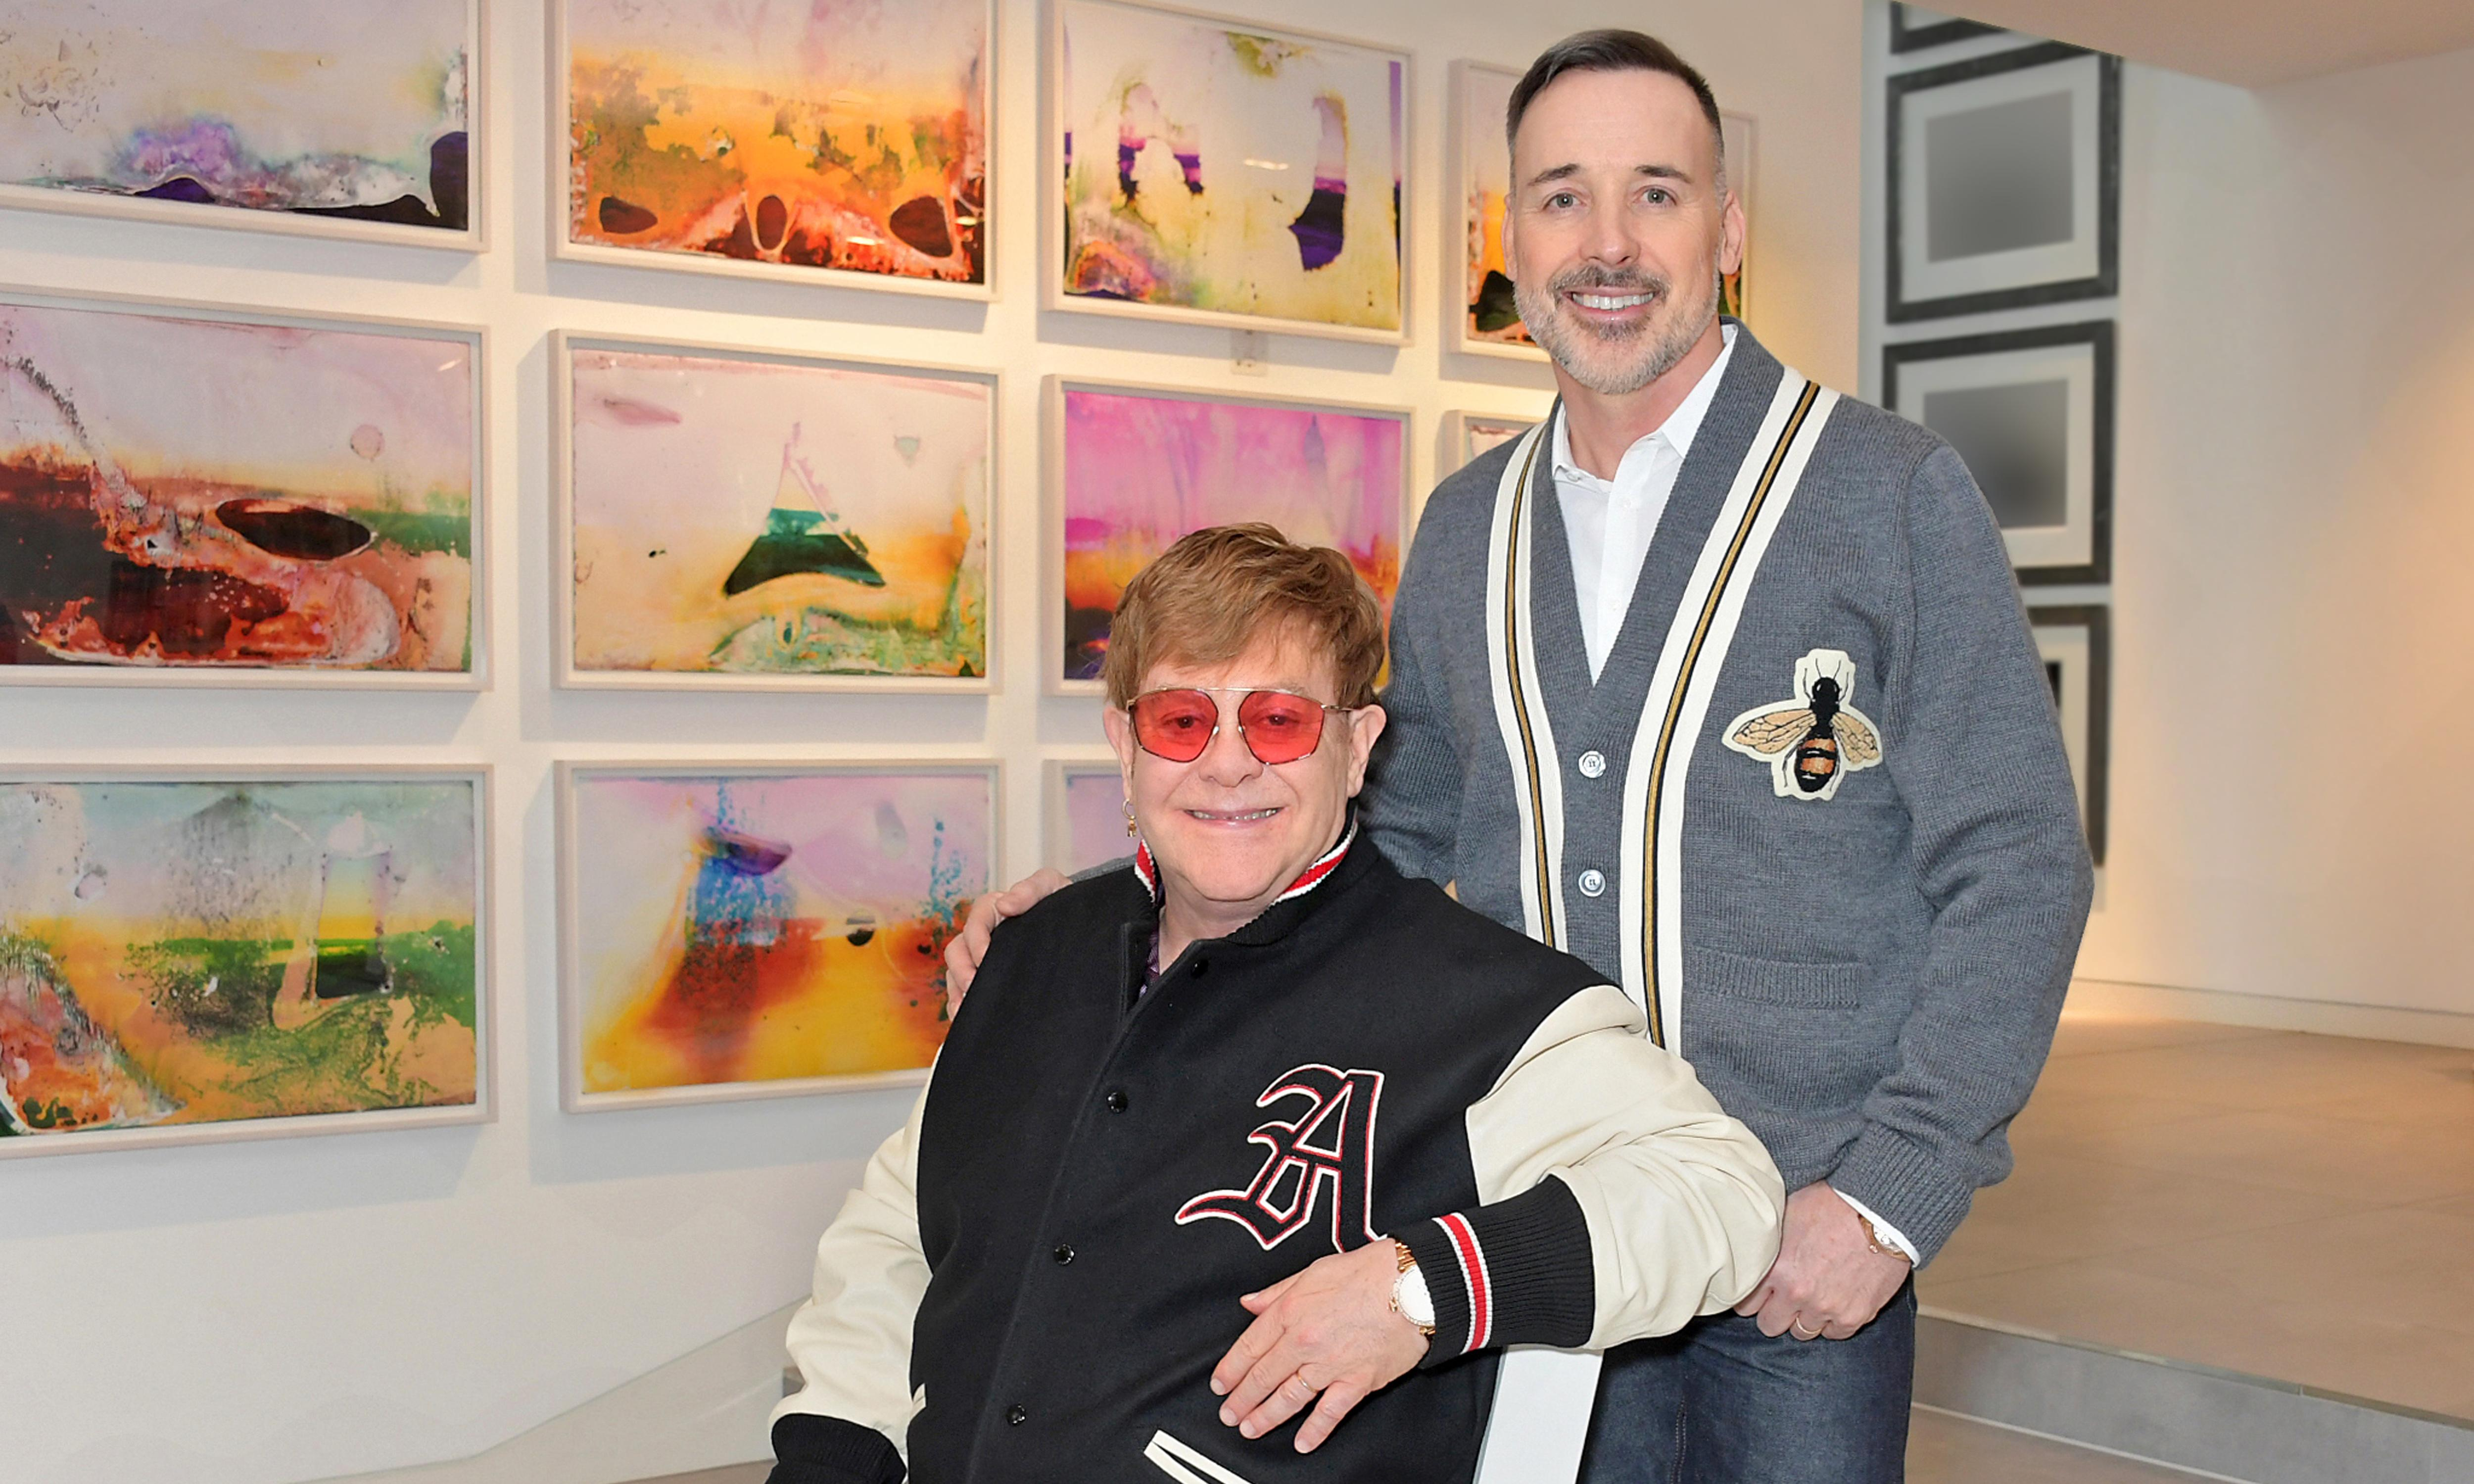 V&A to rename photography gallery after Sir Elton John and David Furnish